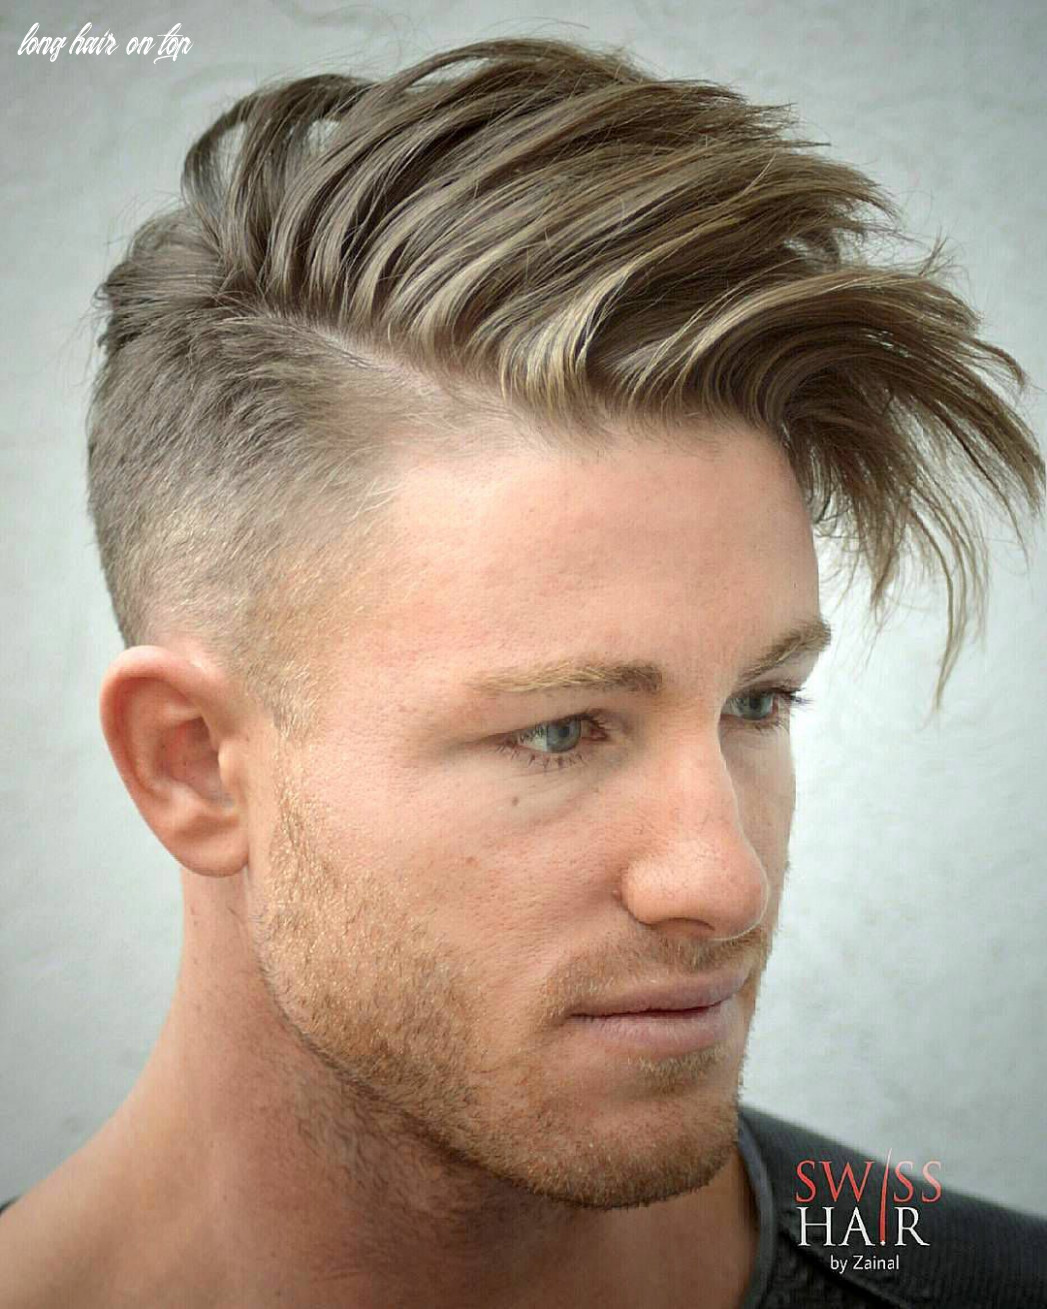 Long hair hairstyles for men: 12 cool haircut styles for 1212 (mit